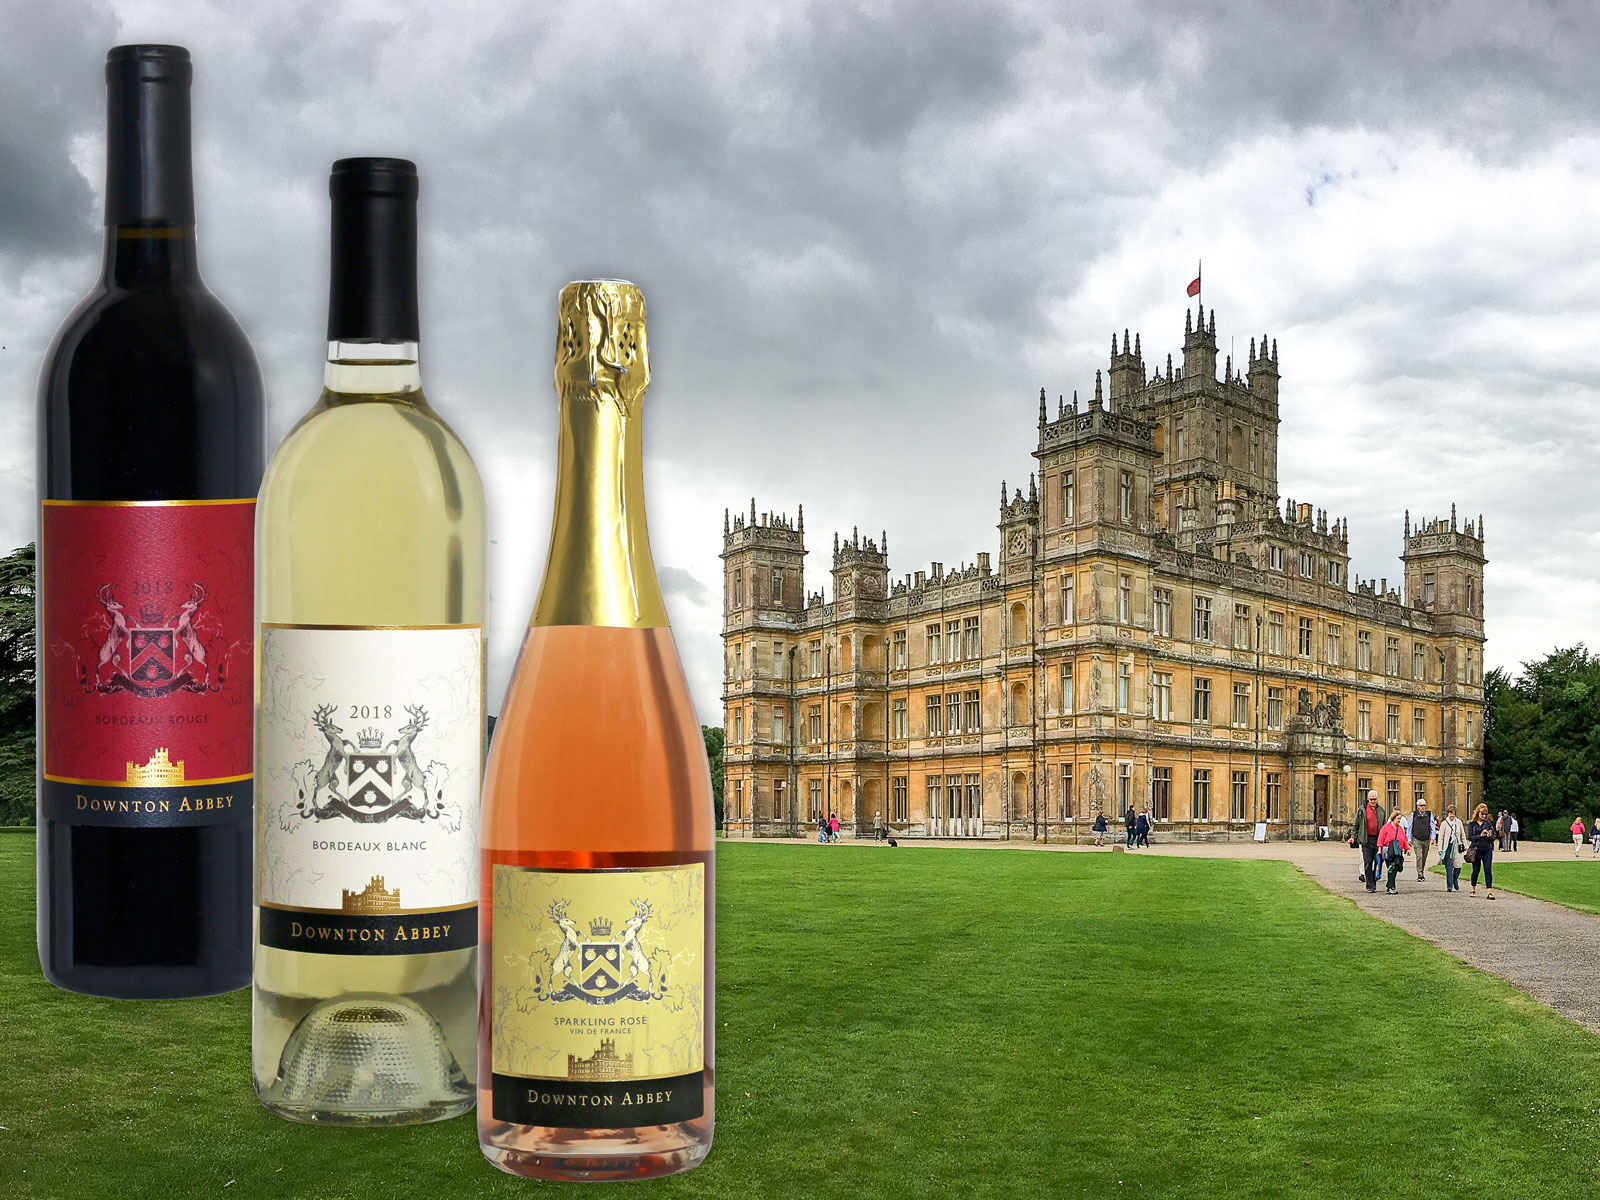 downton-abbey-movie-wines-FT-BLOG0919.jpg